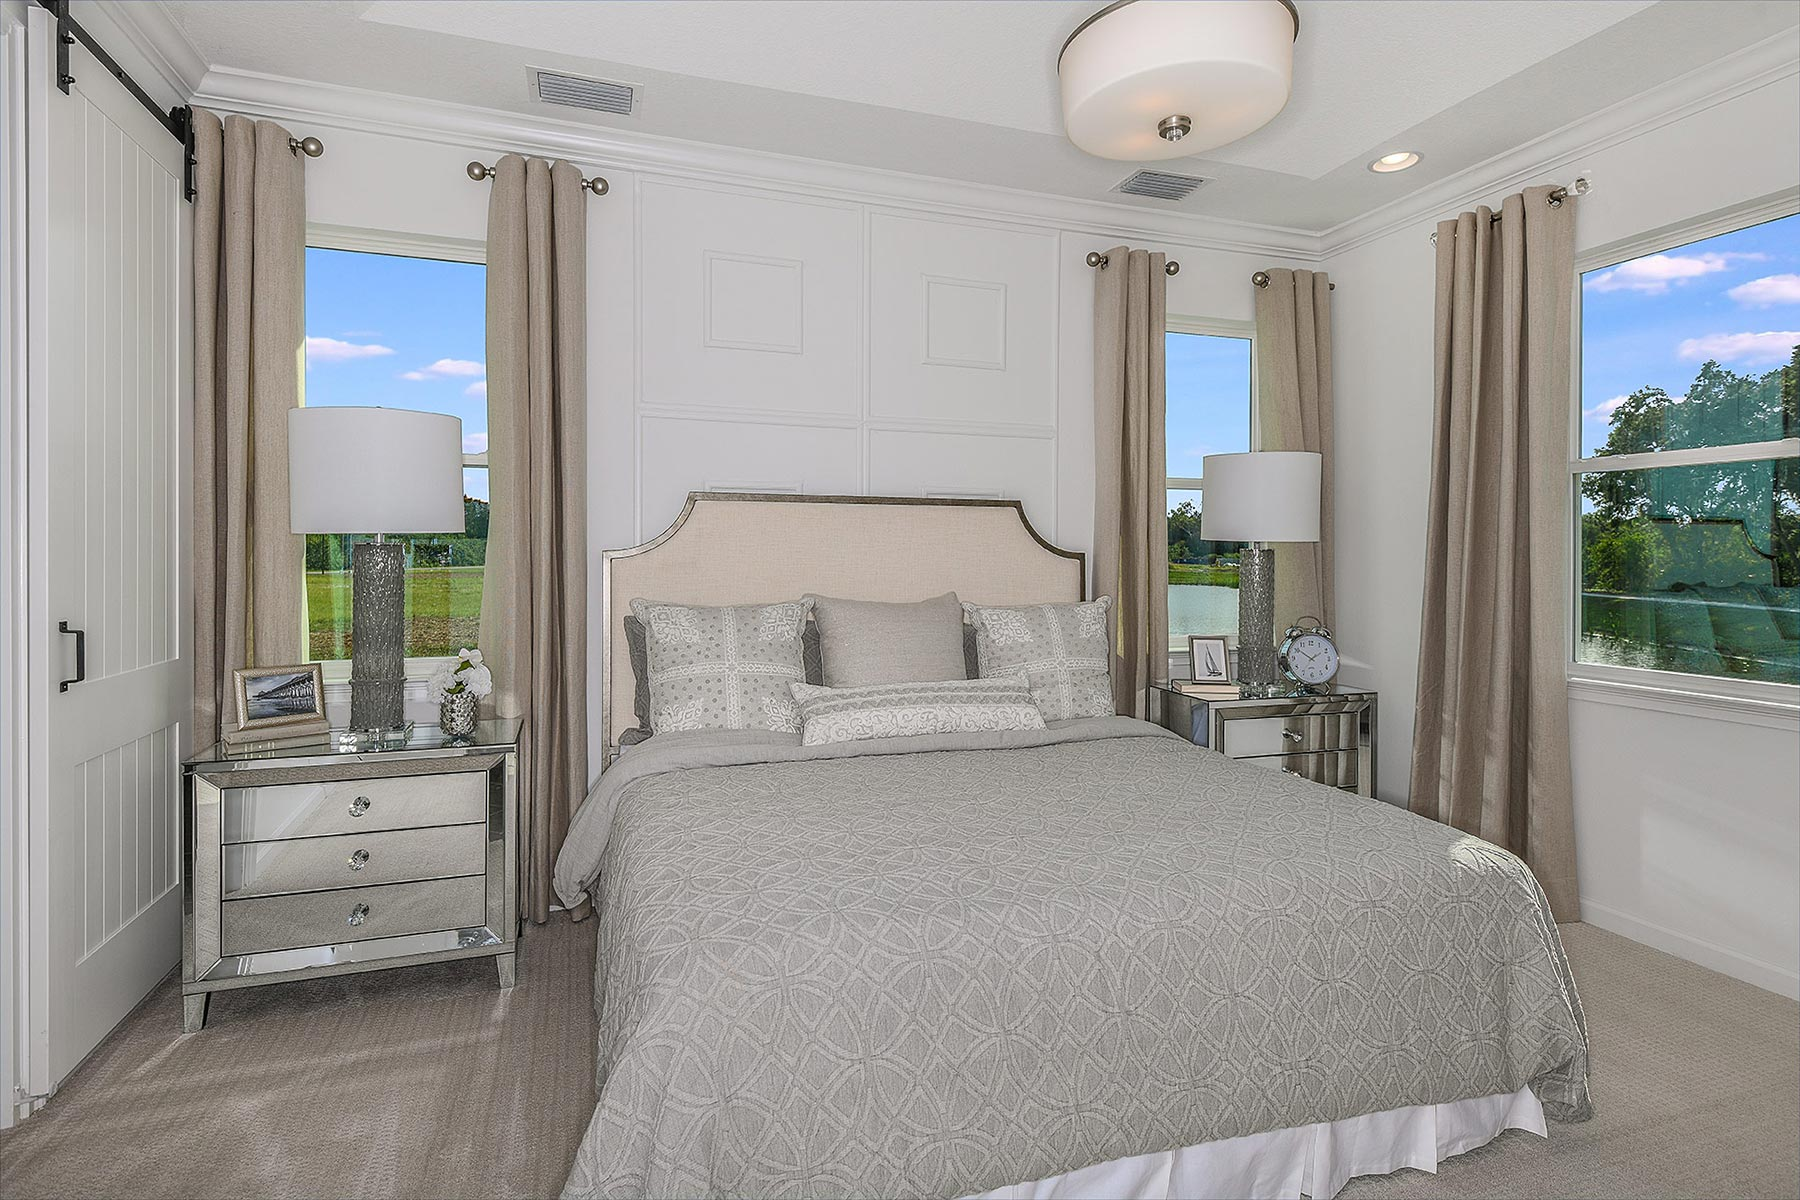 Seascape Plan Bedroom at Sunrise Preserve at Palmer Ranch in Sarasota Florida by Mattamy Homes